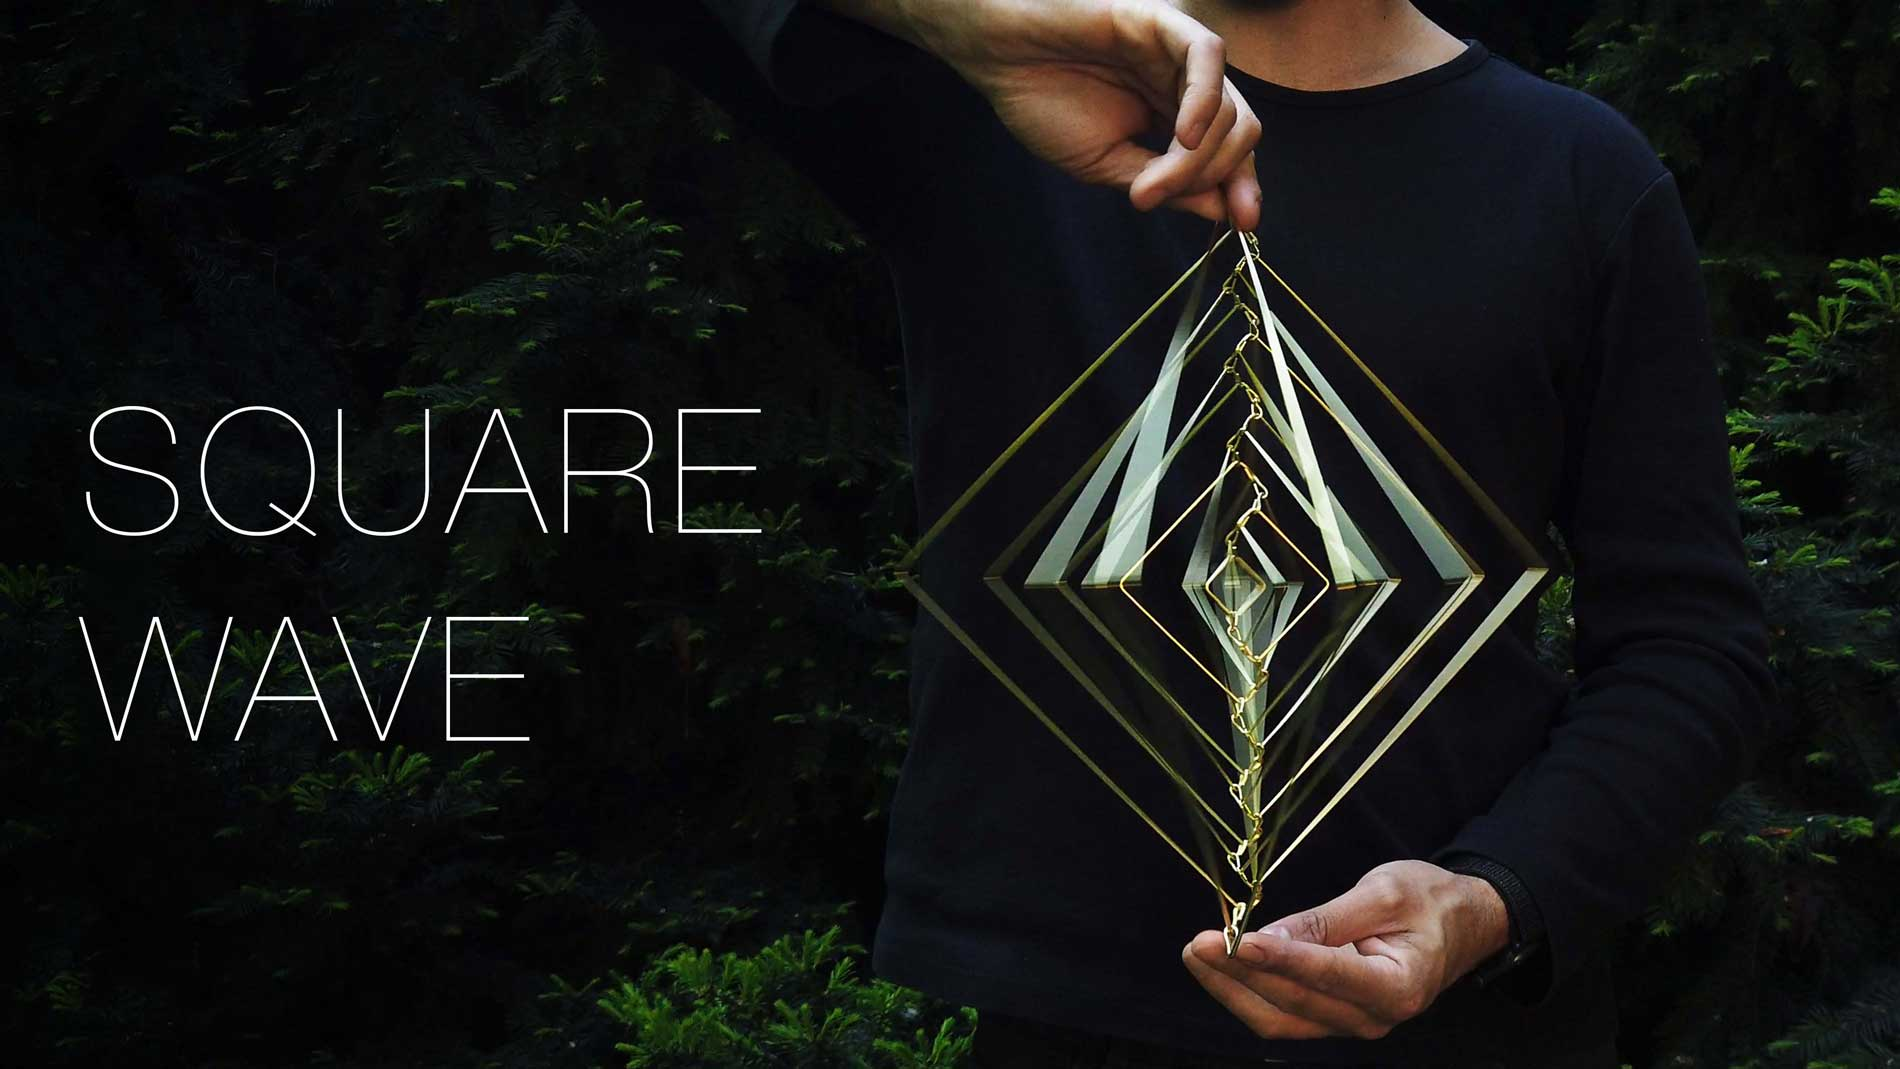 crowdfunding art, kickstarter art, ivan black square wave